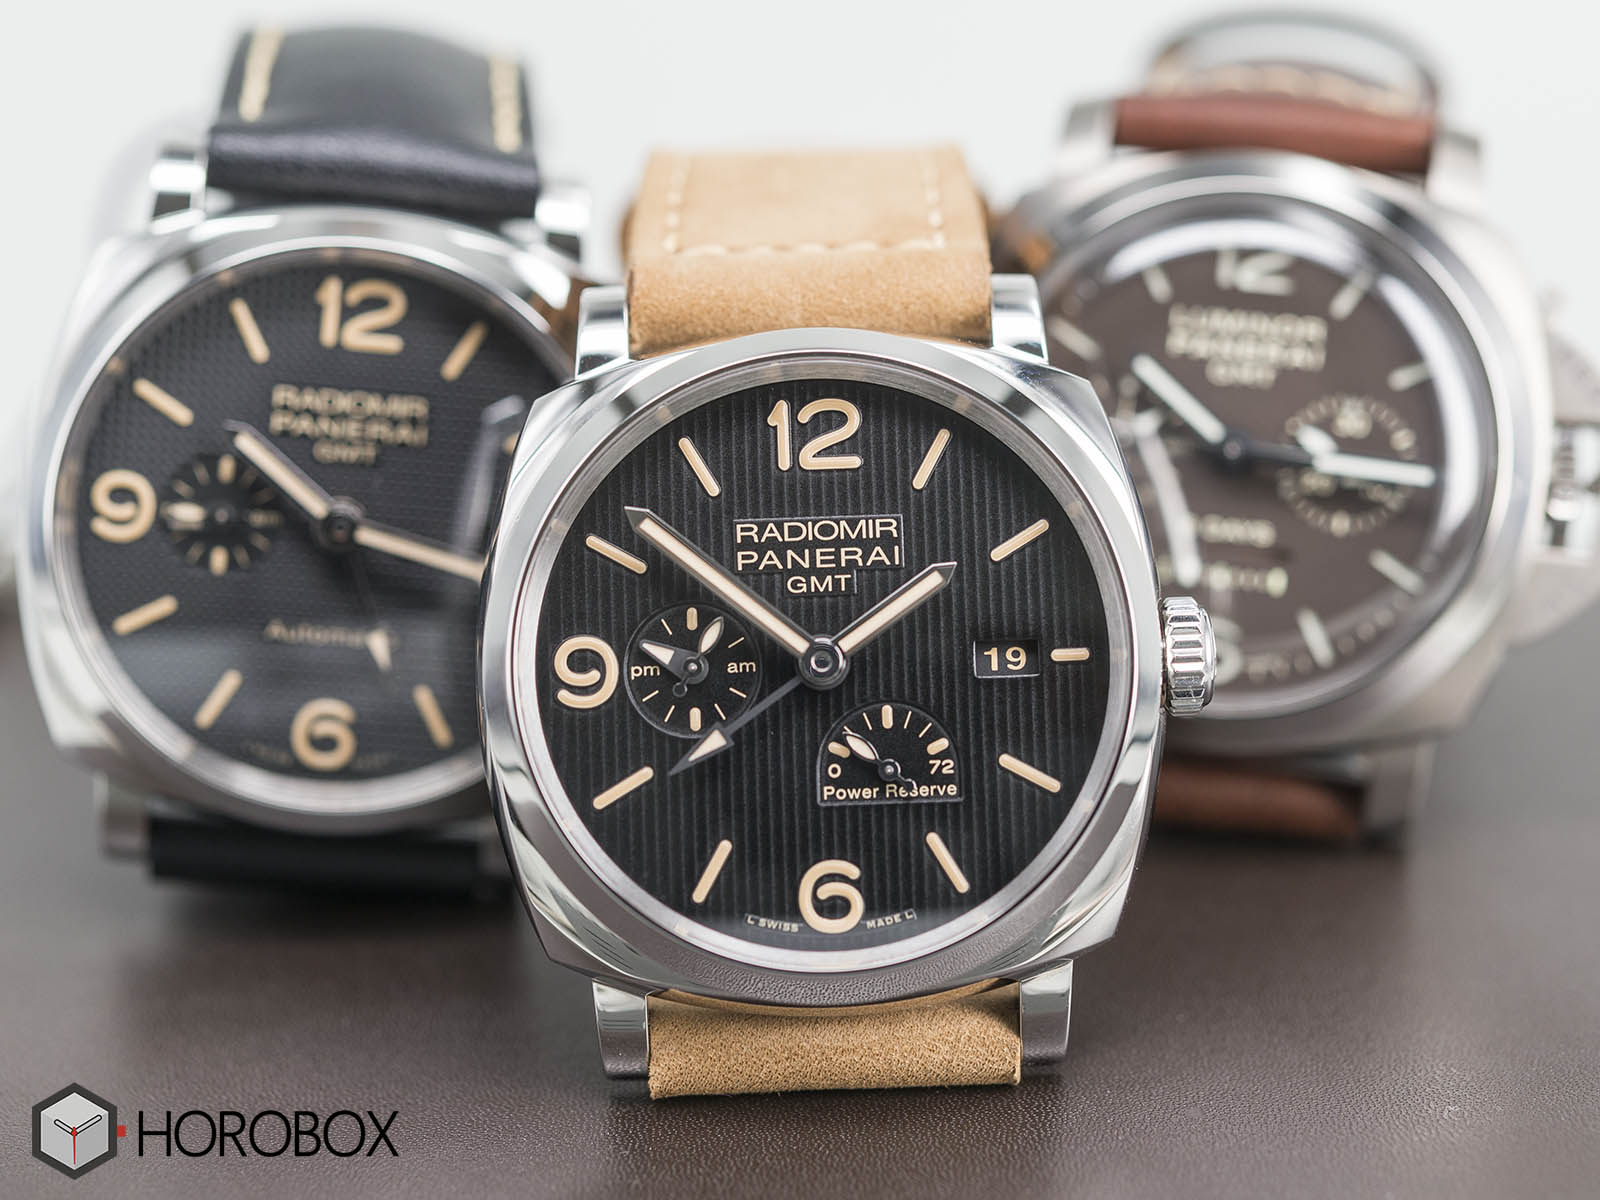 Officine-panerai-power-reserve-6.jpg